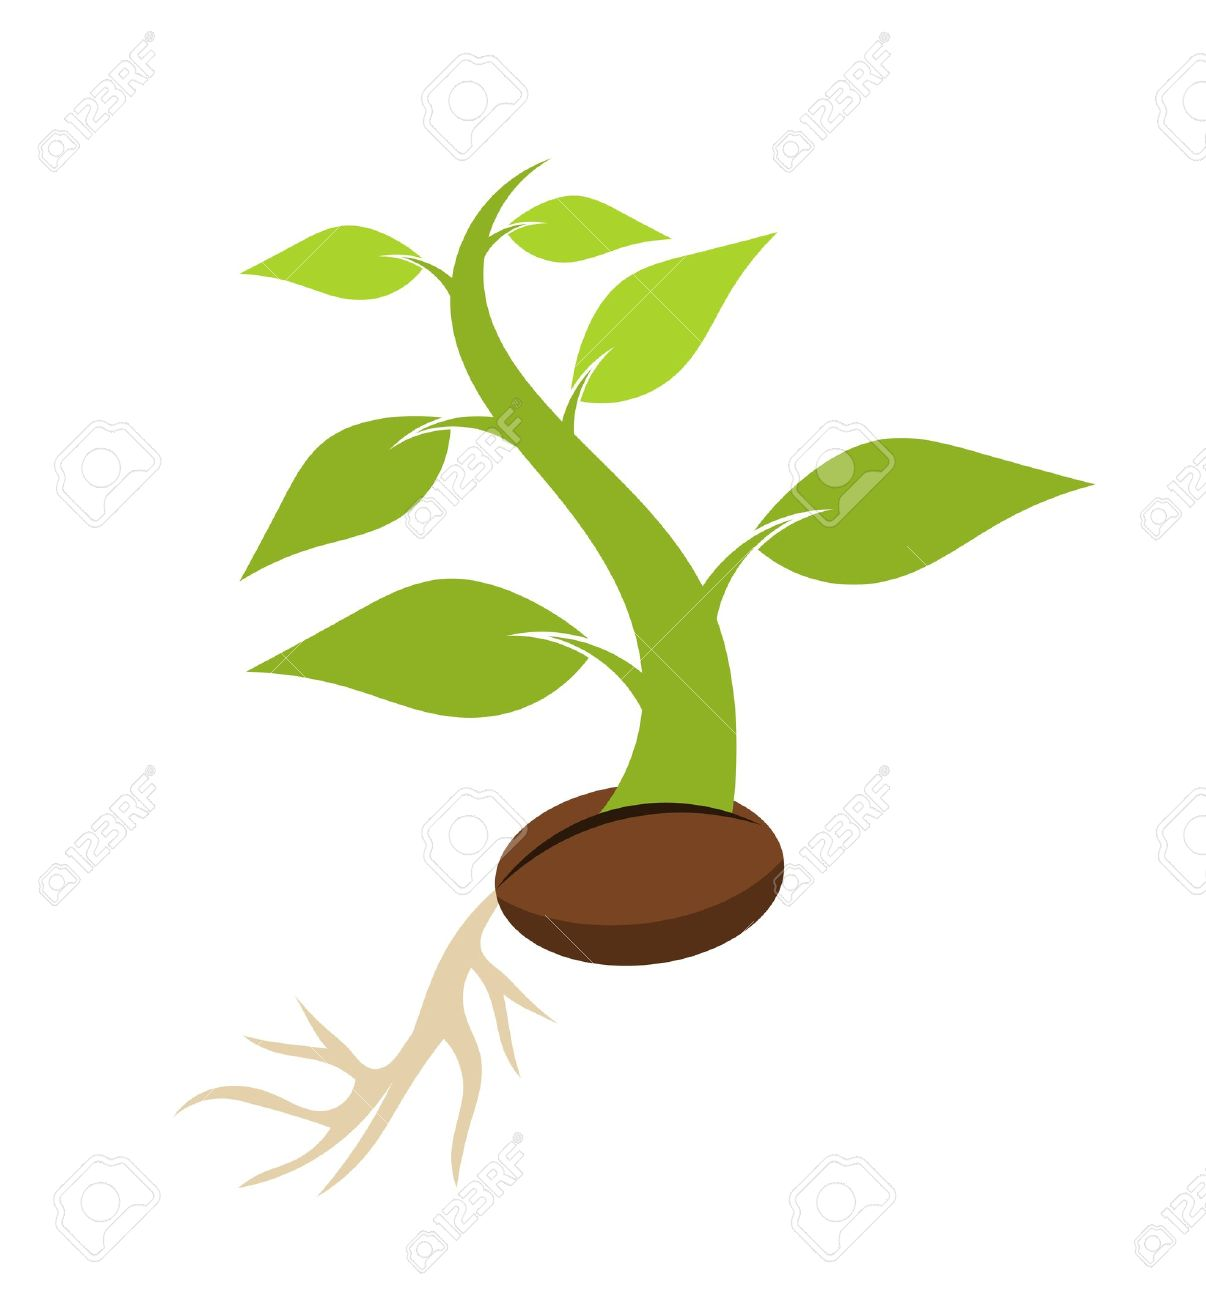 Tree seed clipart 1 » Clipart Station.